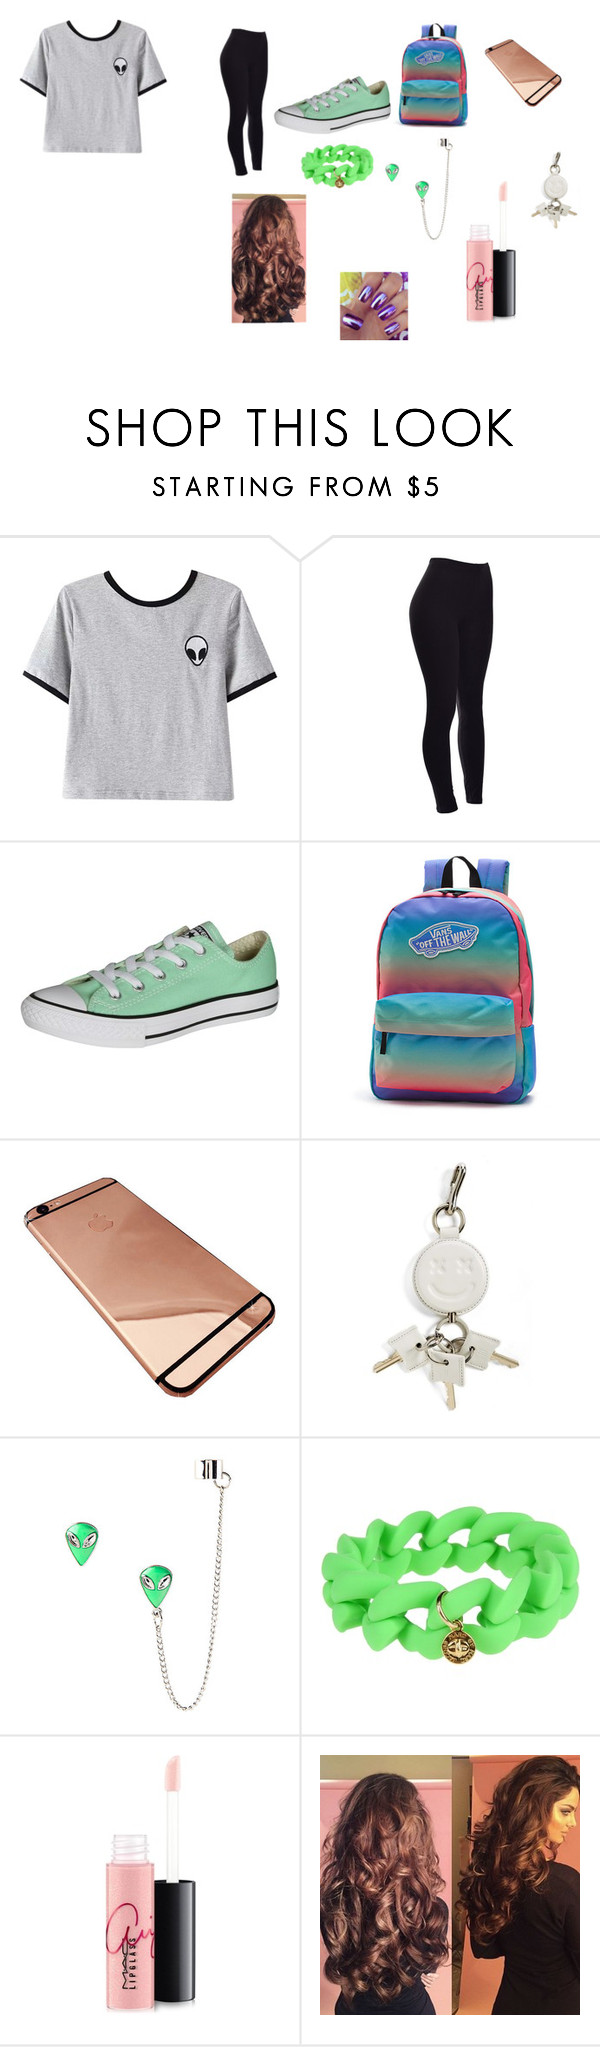 """""""Street Look 2"""" by ivieoww ❤ liked on Polyvore featuring Chicnova Fashion, Converse, Vans, Alexander Wang, Marc by Marc Jacobs and MAC Cosmetics"""